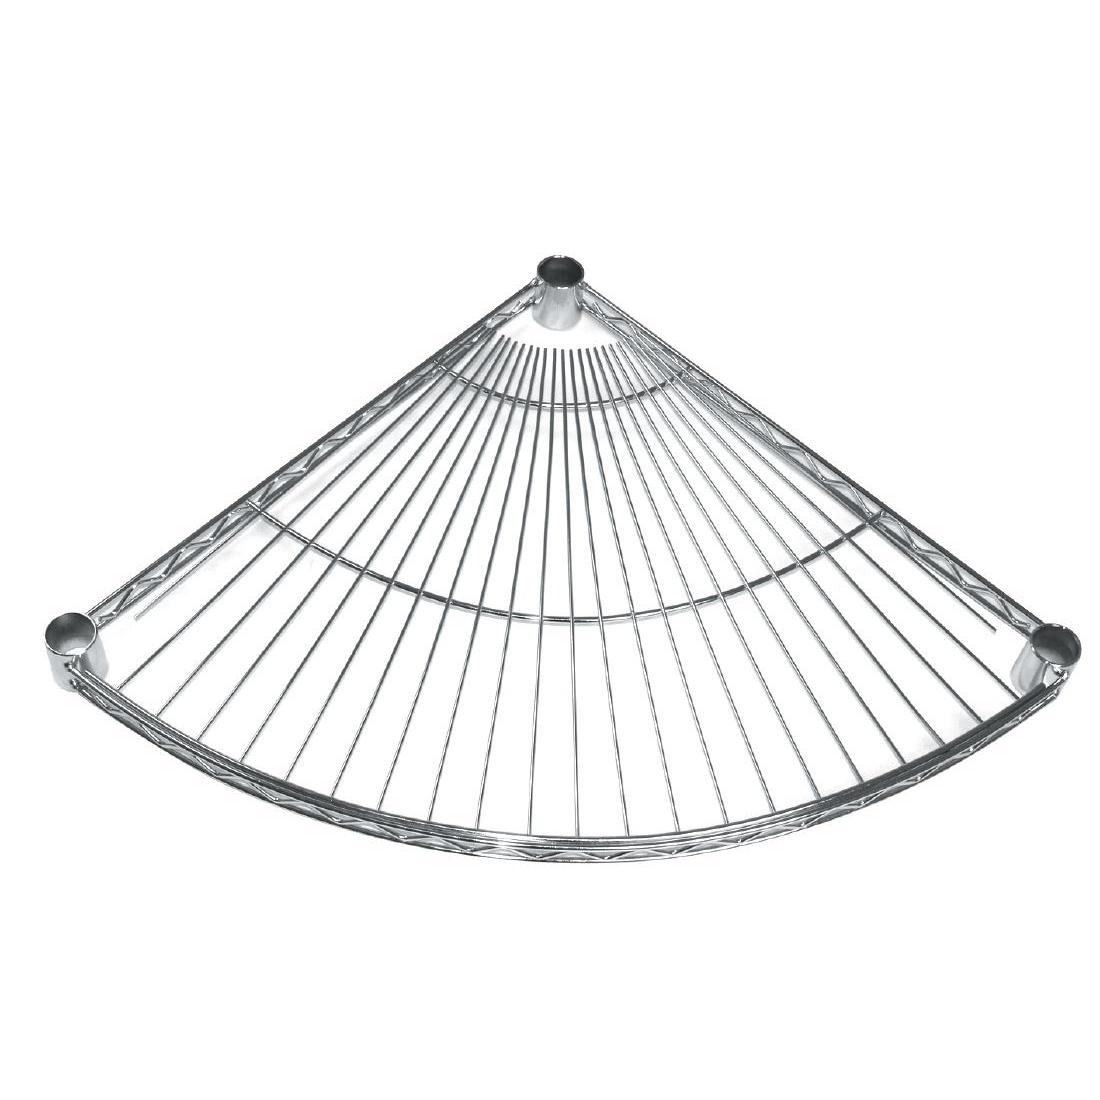 GF984 - Fan Shelf for Vogue Wire Shelving 457mm - Pack of 4 - GF984